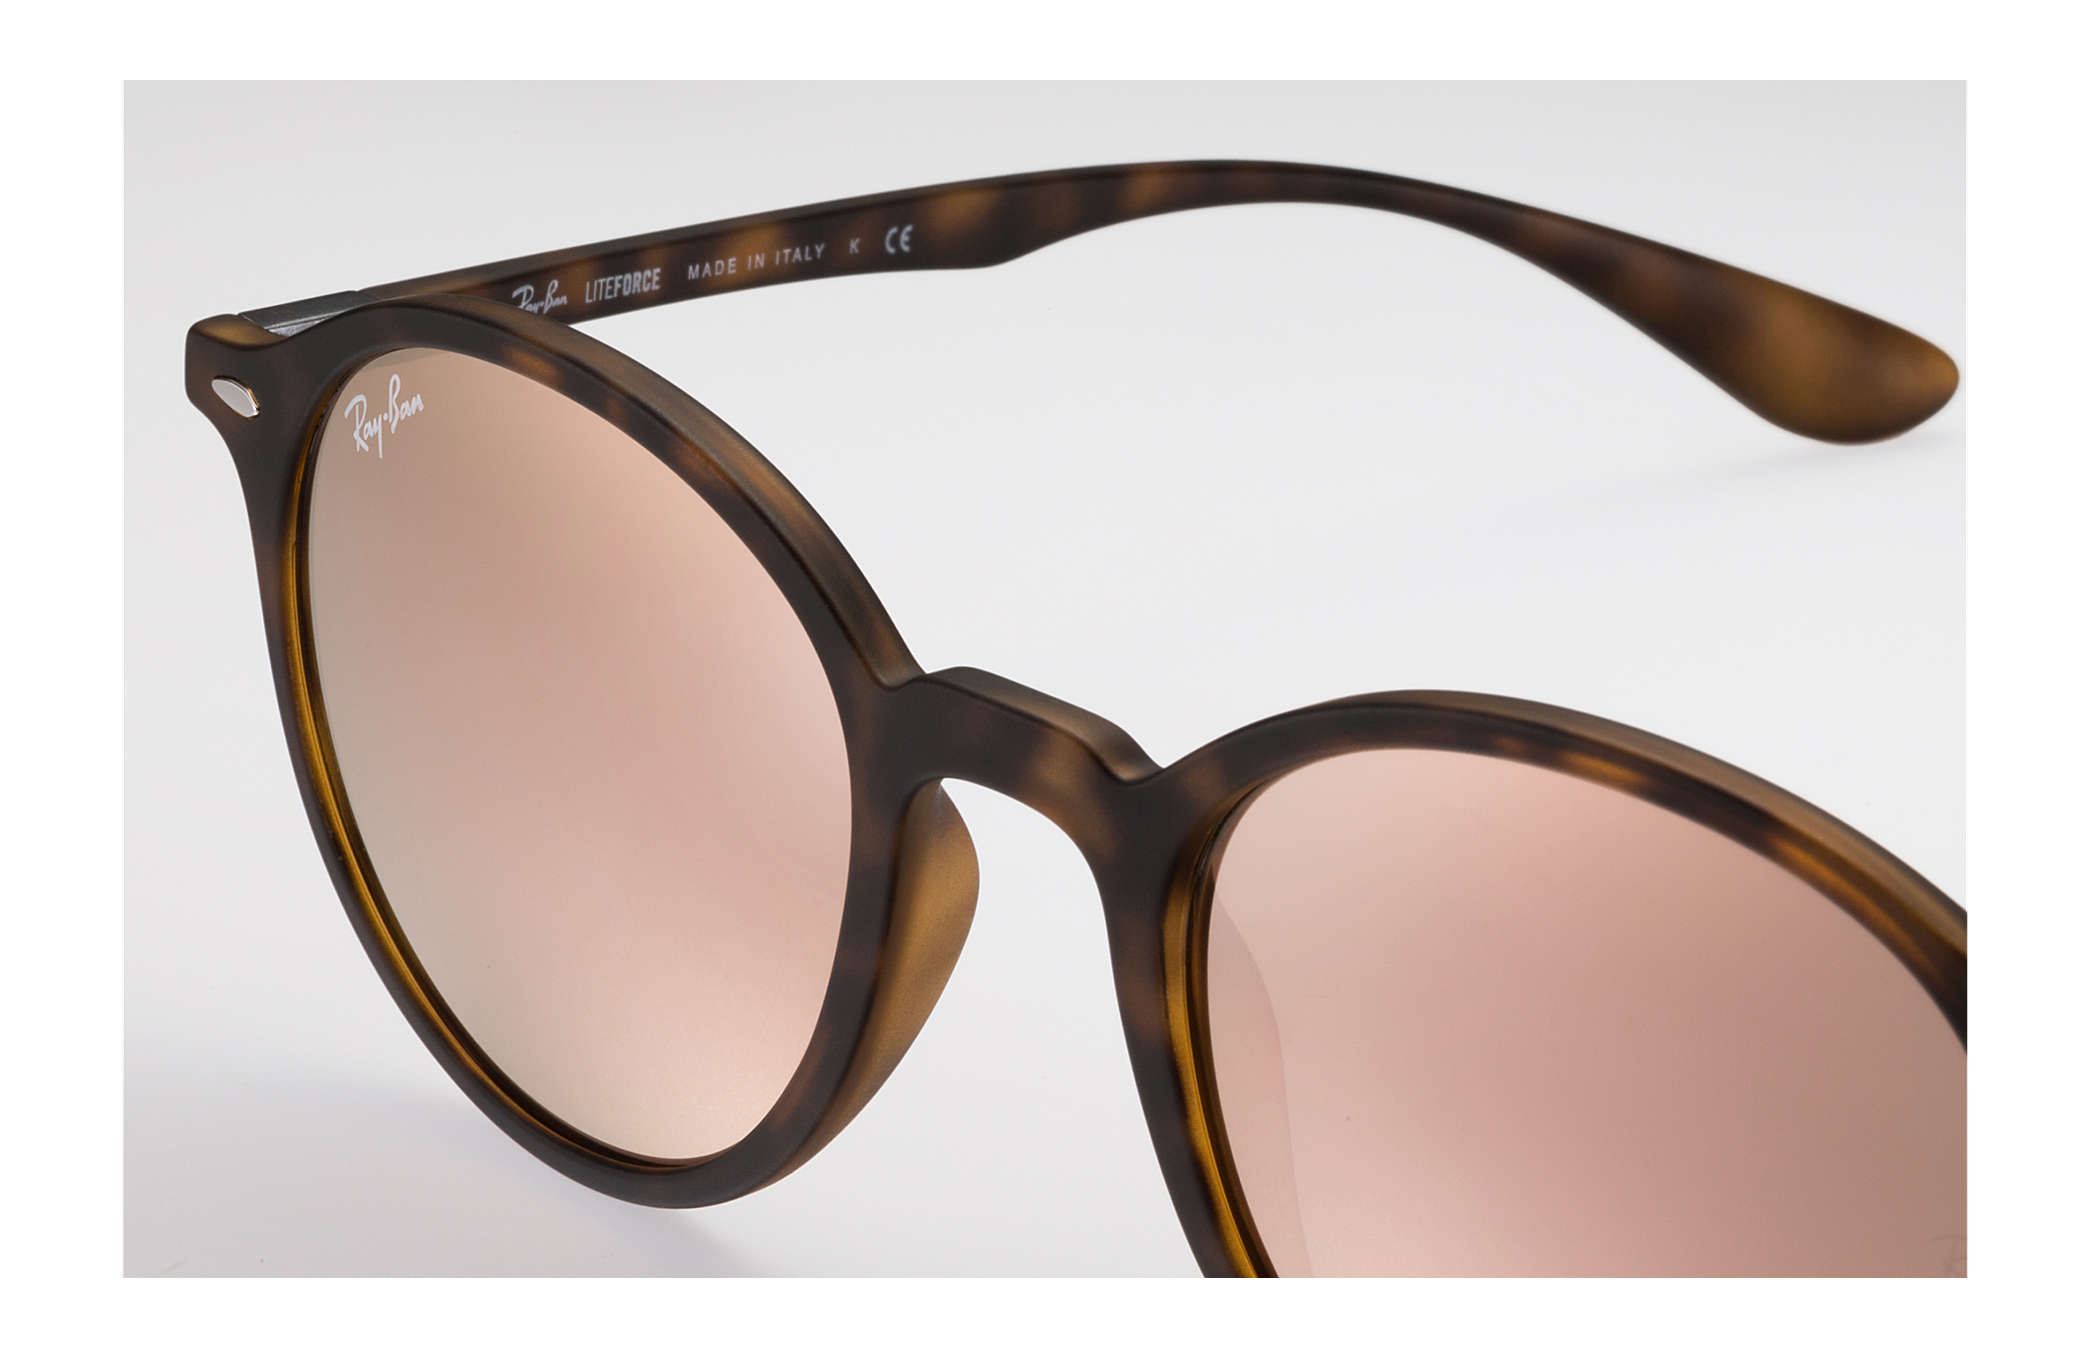 d5912ff6a43 ... clearance ray ban round liteforce sunglasses c8485 8f564 ...